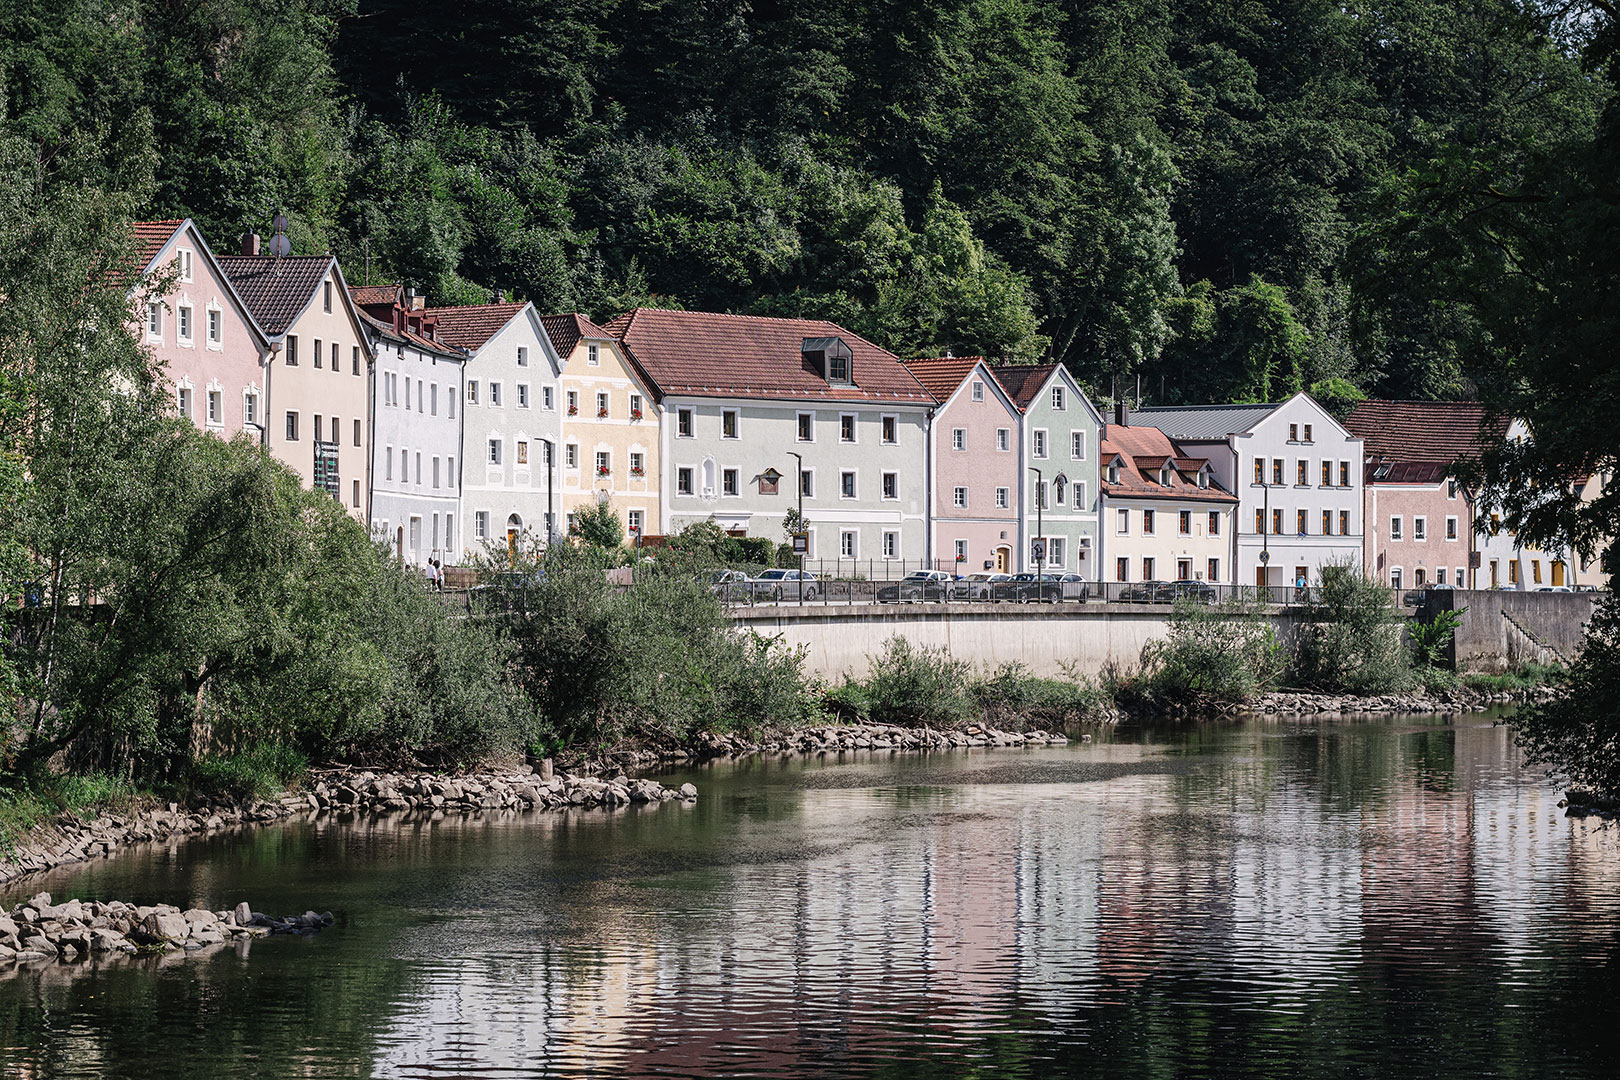 Häuser am Fluss in Passau